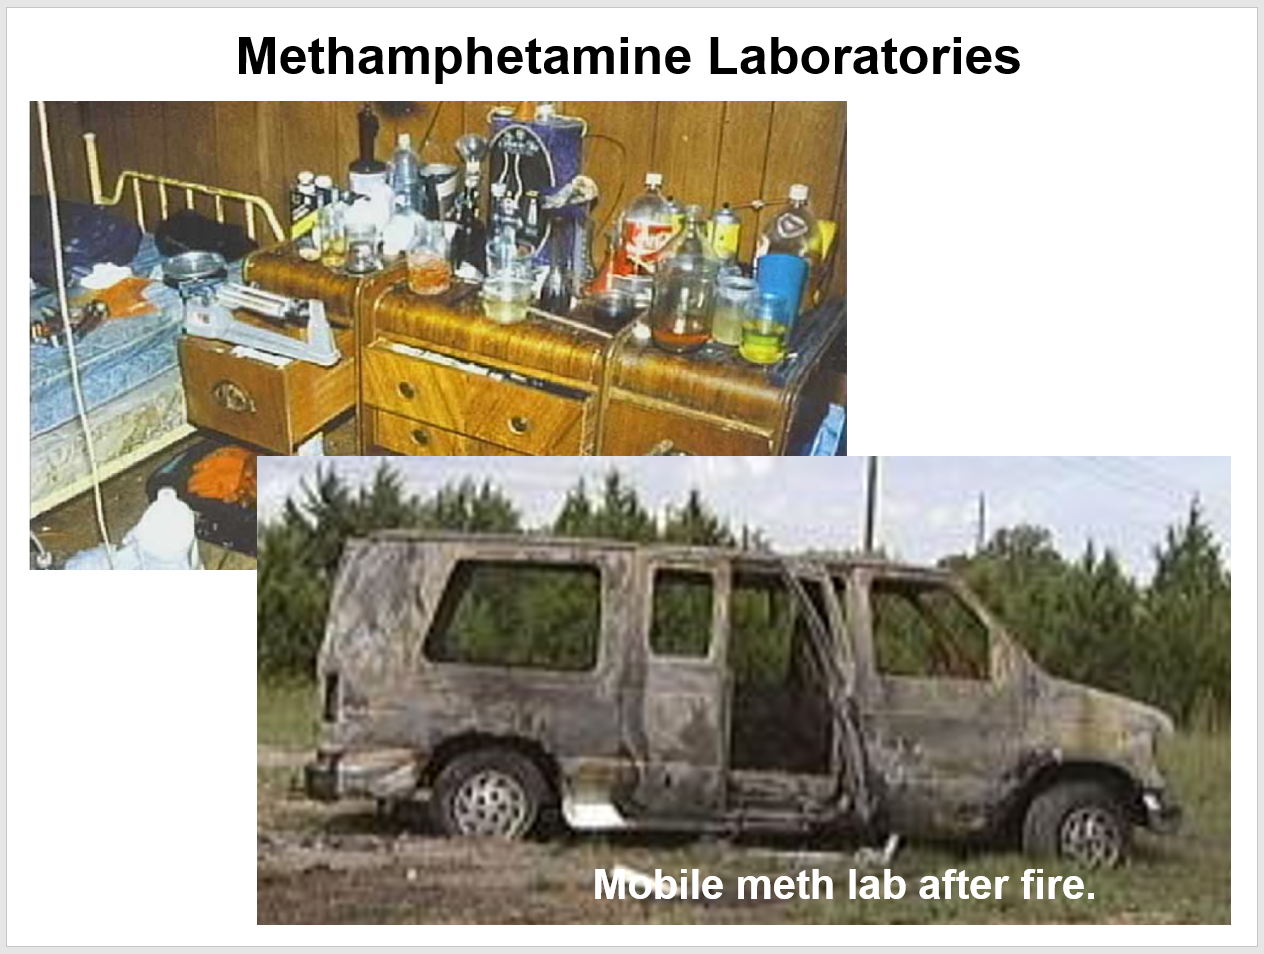 Cdqap Ruminations Preventing Rural Crime On Your Dairy California Ford Transit Mark 6 Fuse Box One Estimate Has Pounds Of Hazardous Waste Generated For Every Pound Methamphetamine Produced Labs Can Be Set Up In Employee Housing Barns